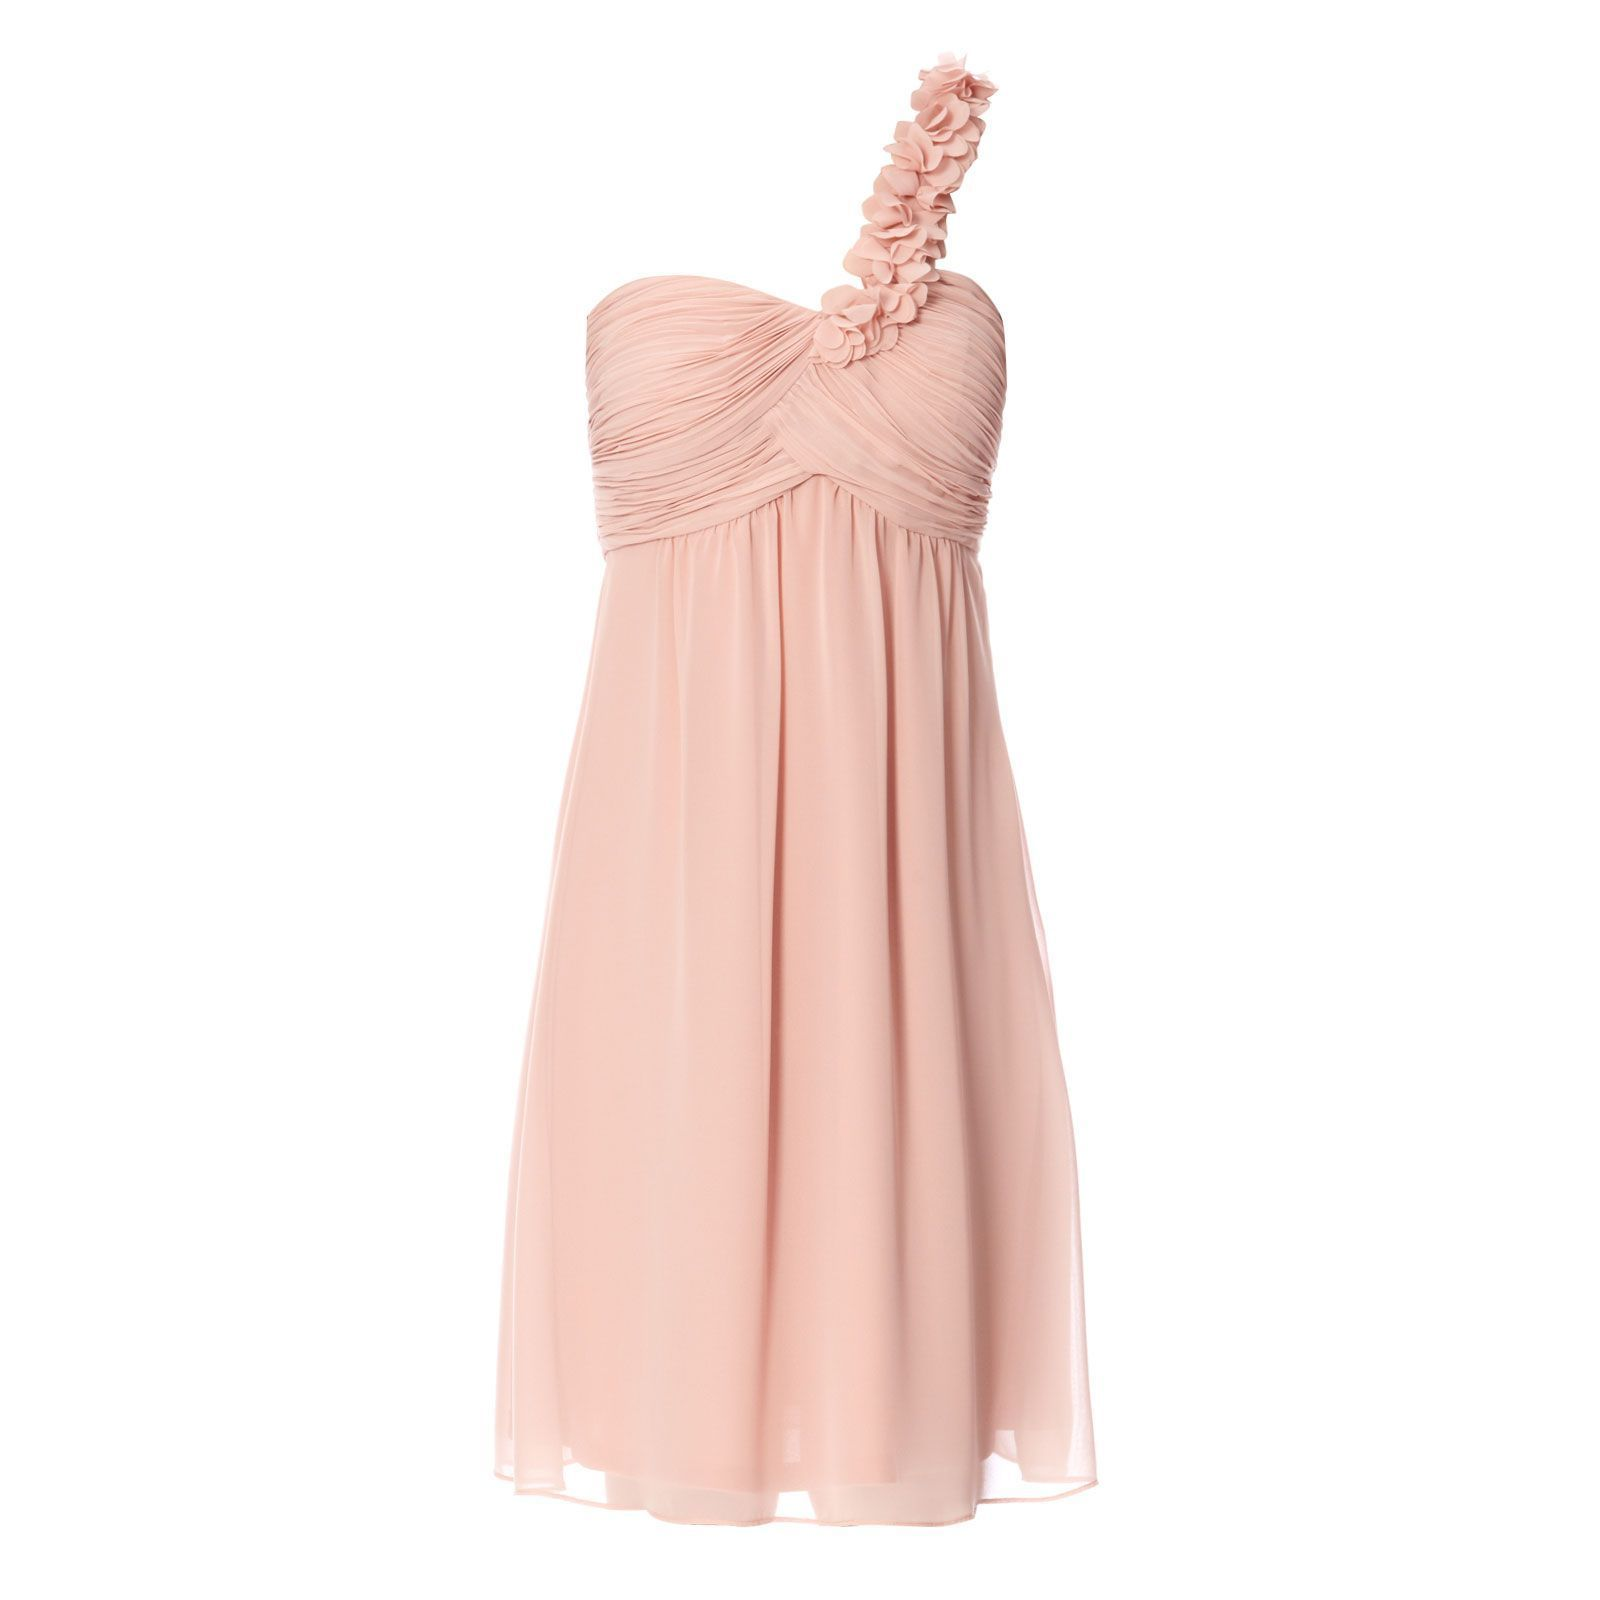 Robe cocktail rose poudre